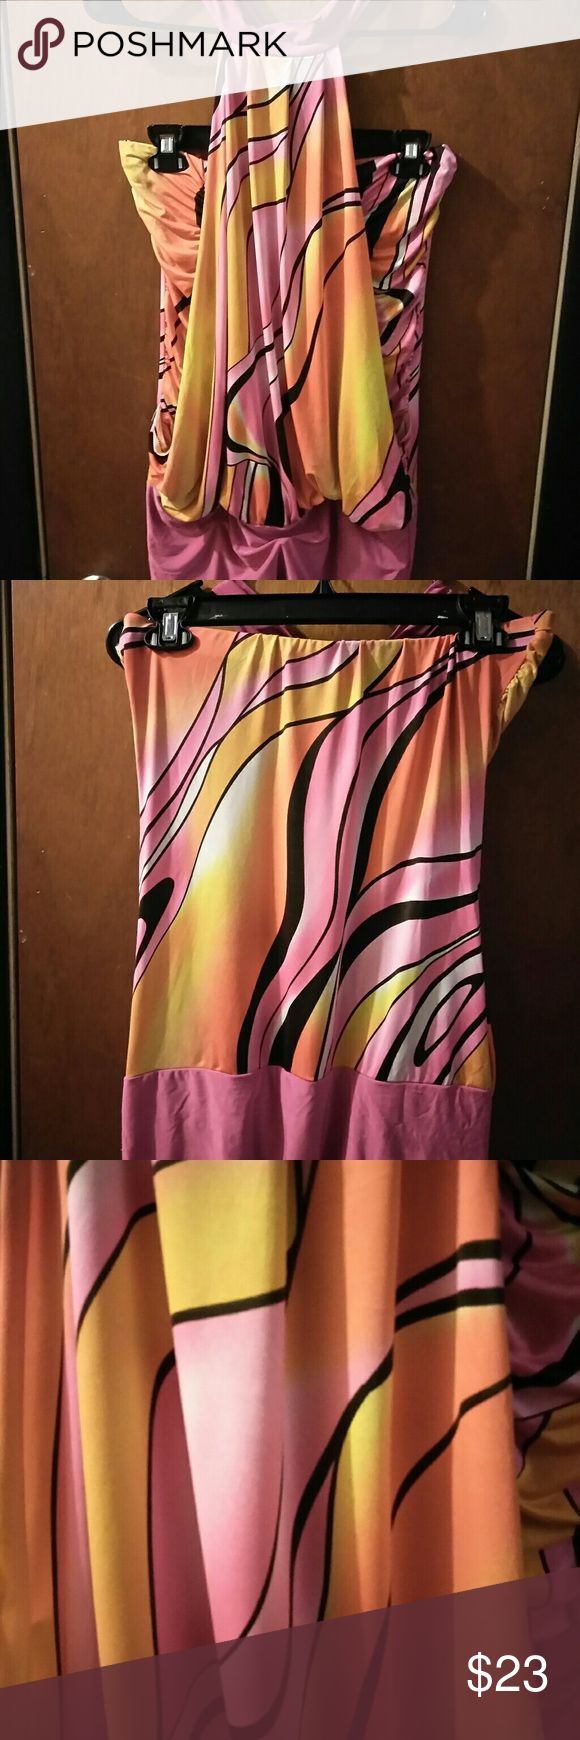 🍒2 piece Halter top 🍒 sz Large 🌟 burst colors Pre-loved 💖, great condition. Step out for a night on the town with this unique beauty! Codigo Tops